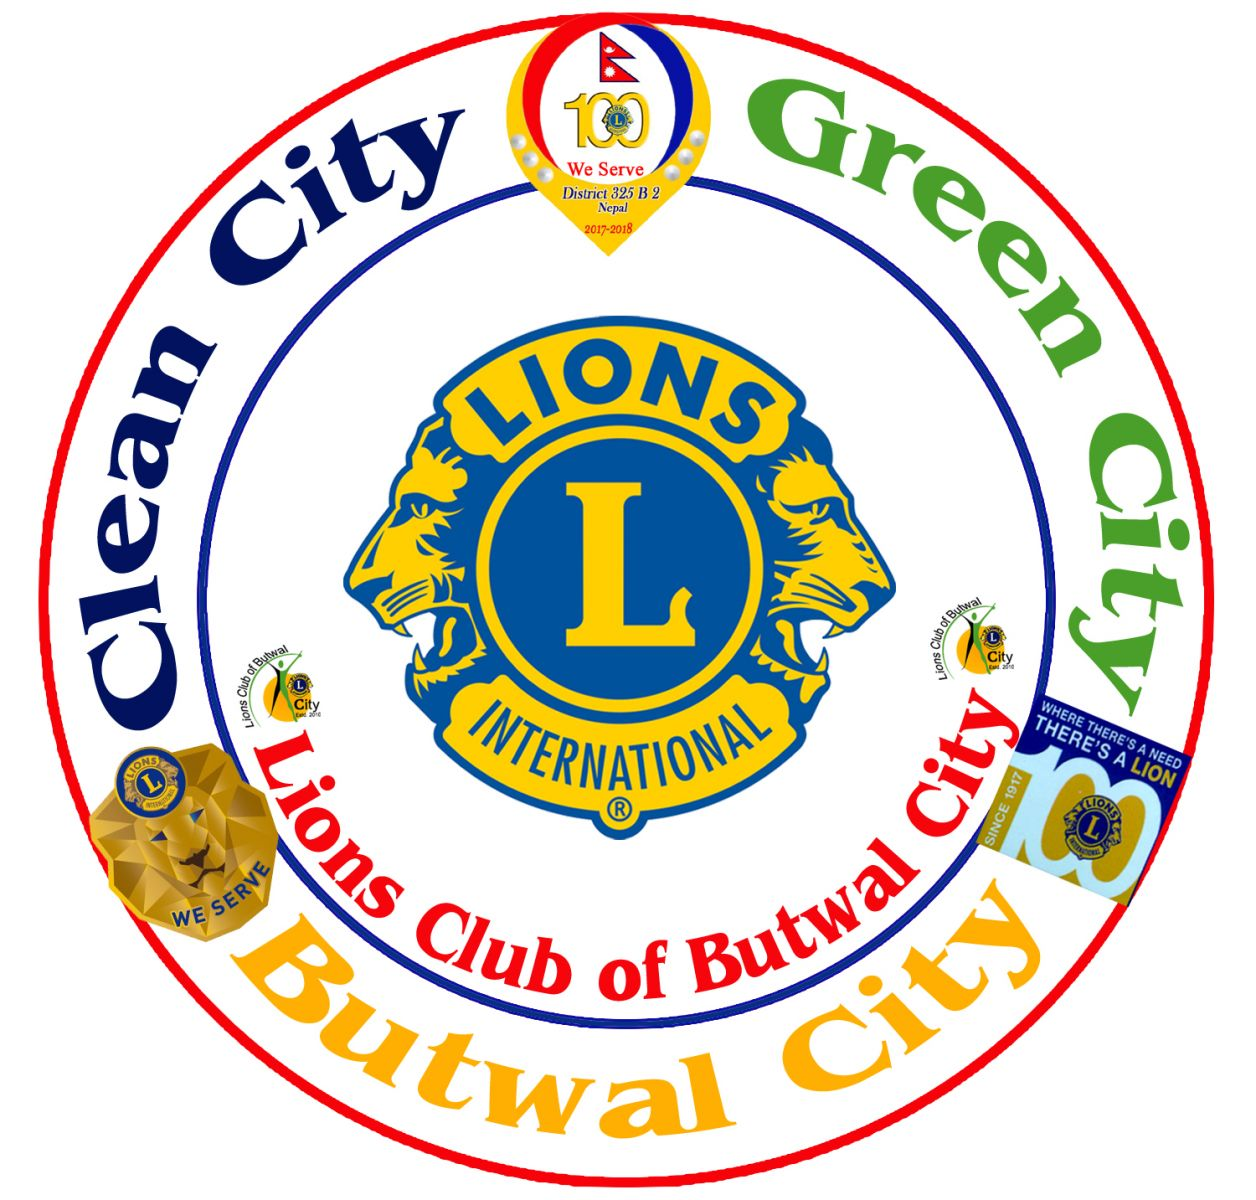 Clean City, Green City, Butwal City- Lions Club of Butwal City